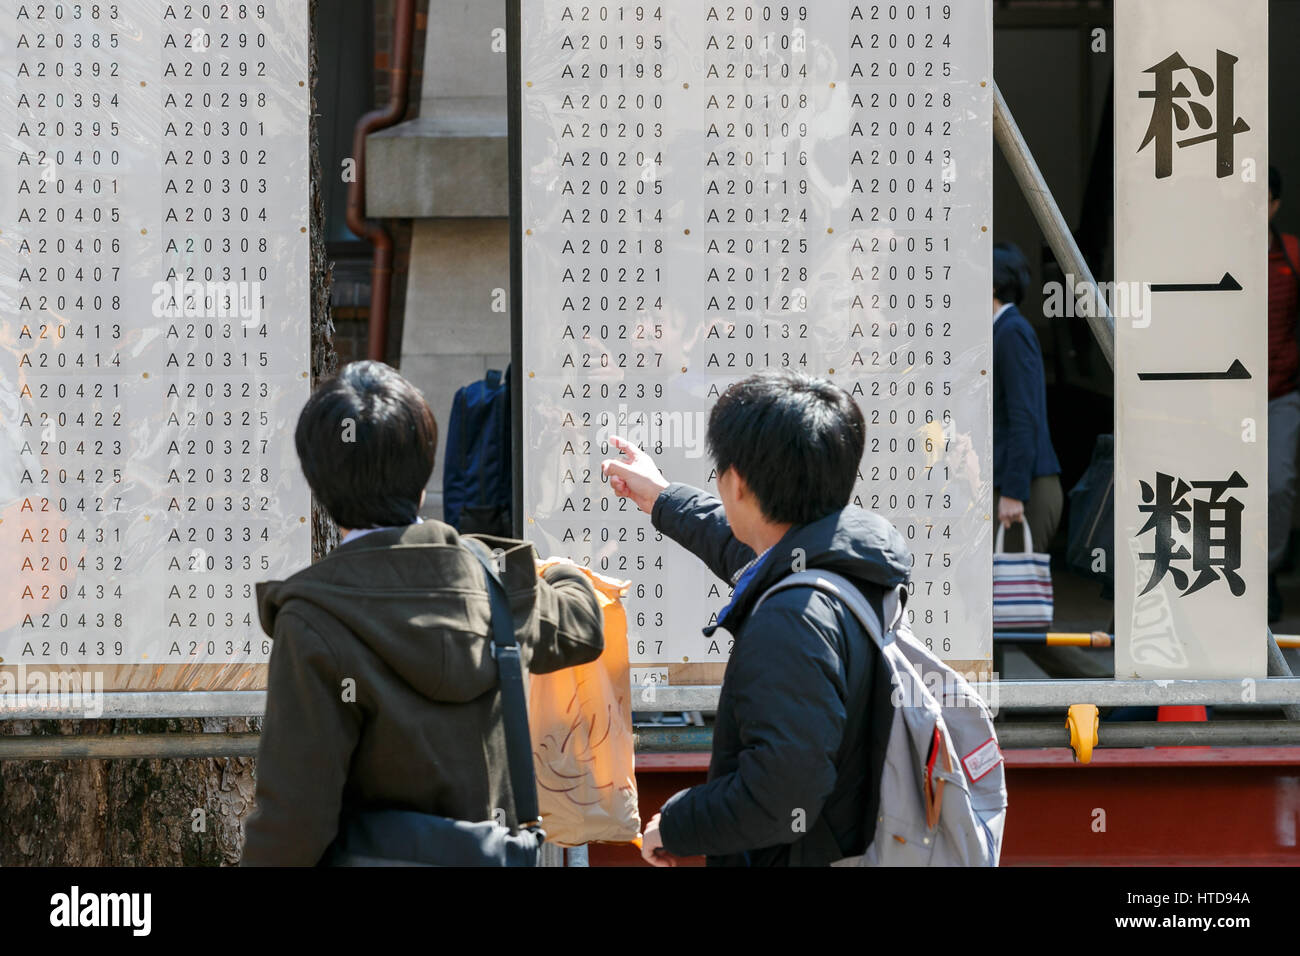 Japanese Students Look For Their Exam Numbers On The List